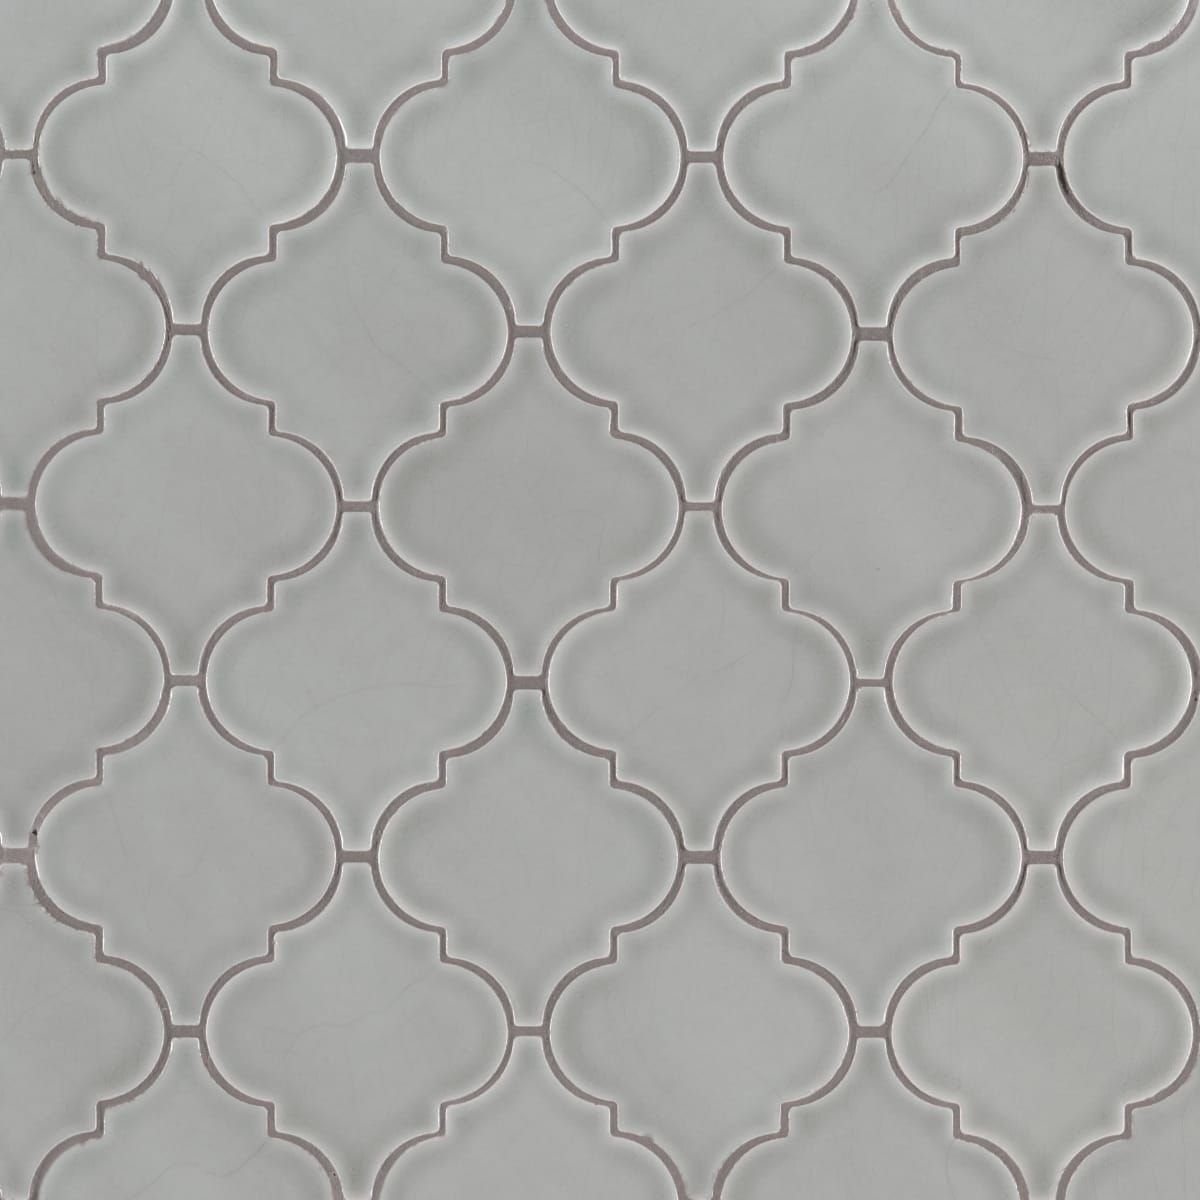 Msi Smot Pt Arabesq W In 2020 Arabesque Tile Ceramic Mosaic Tile Arabesque